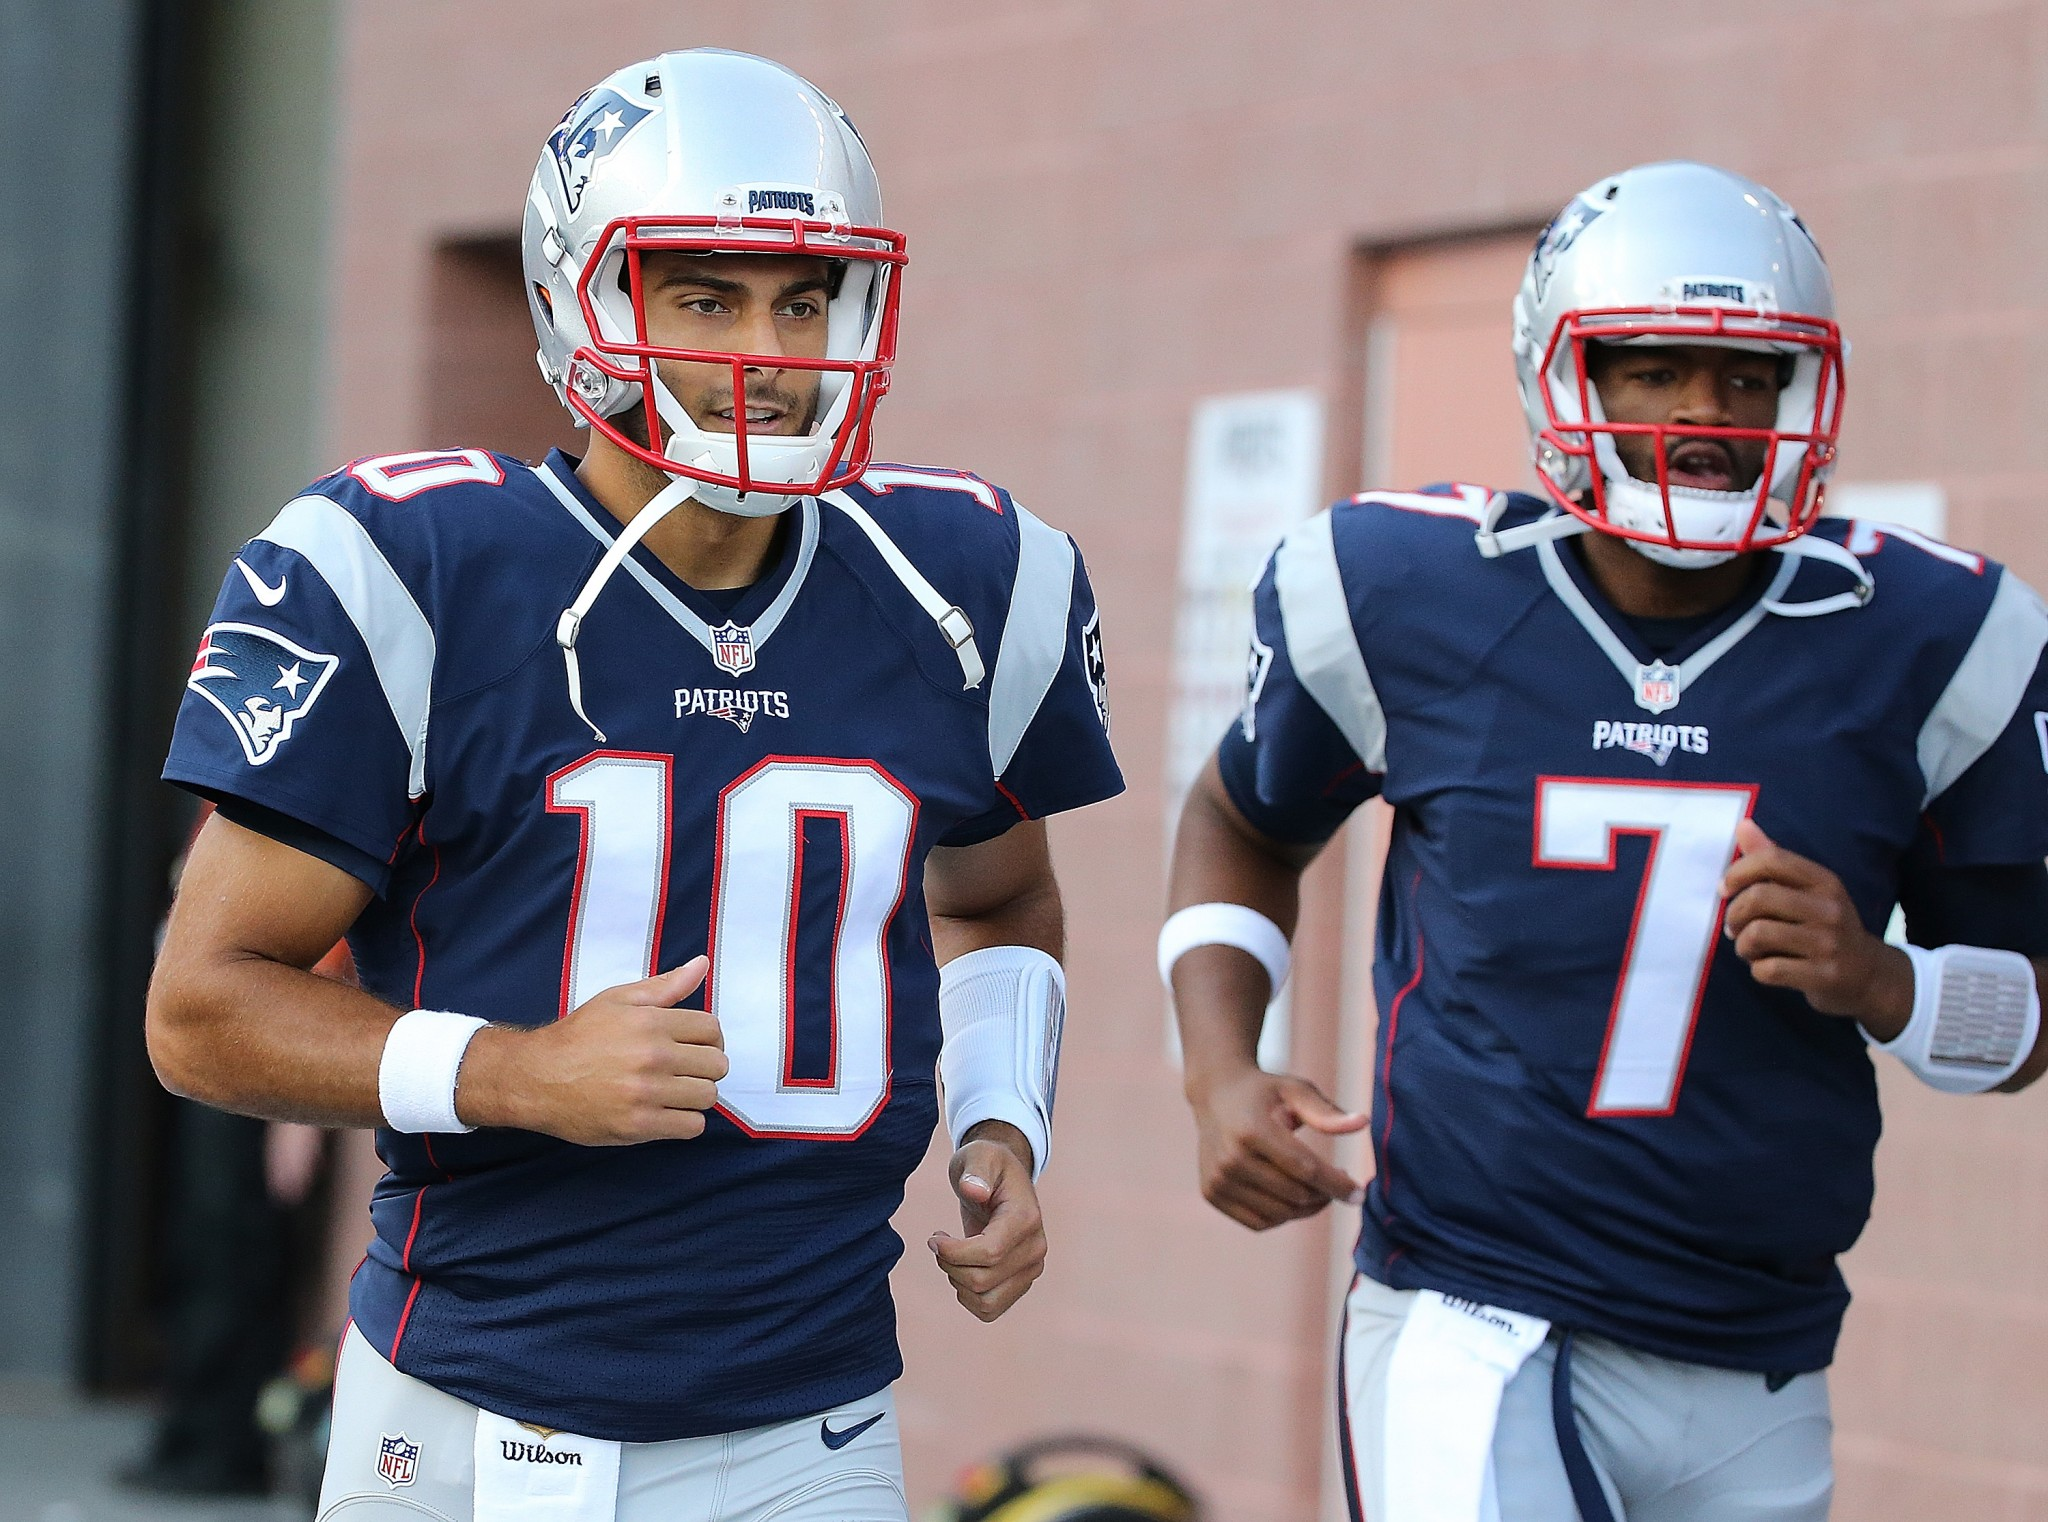 Both Jimmy Garoppolo and Jacoby Brissett at practice